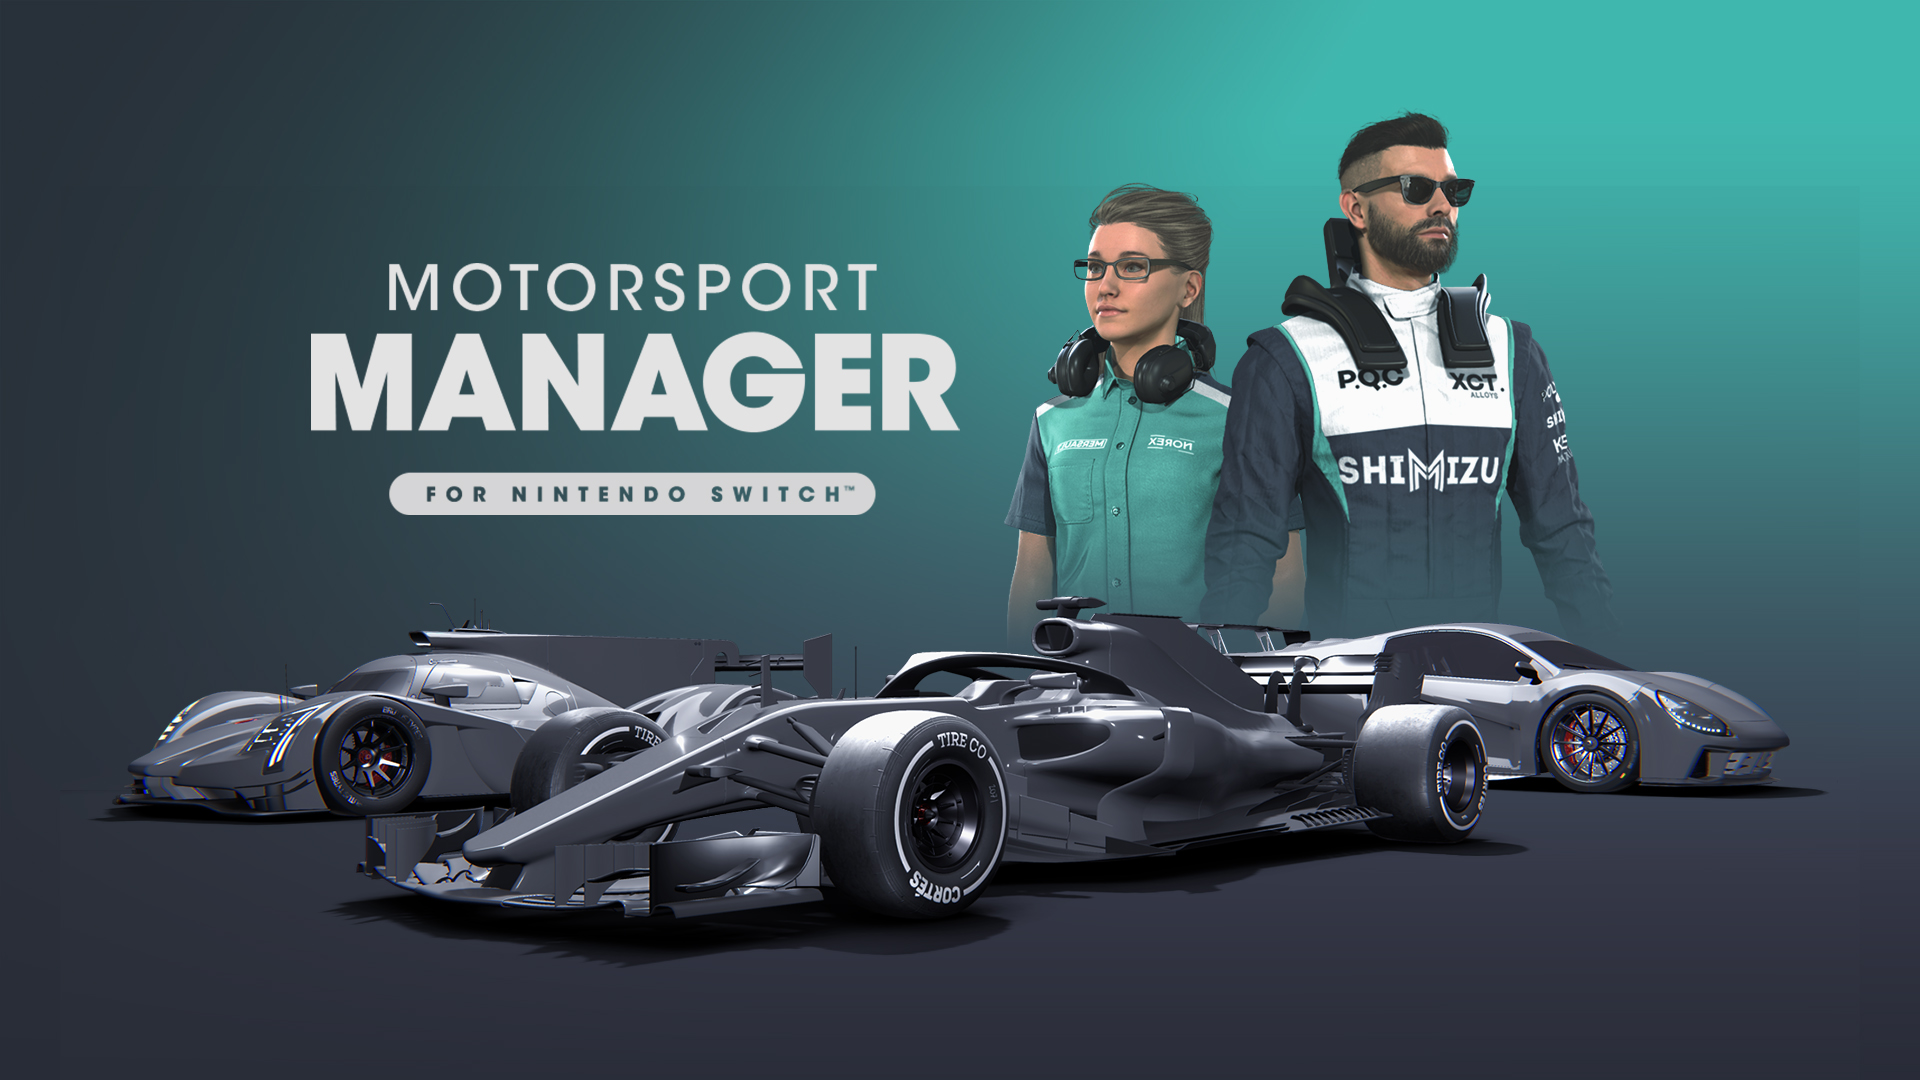 Motorsport Manager for Nintendo Switch Review